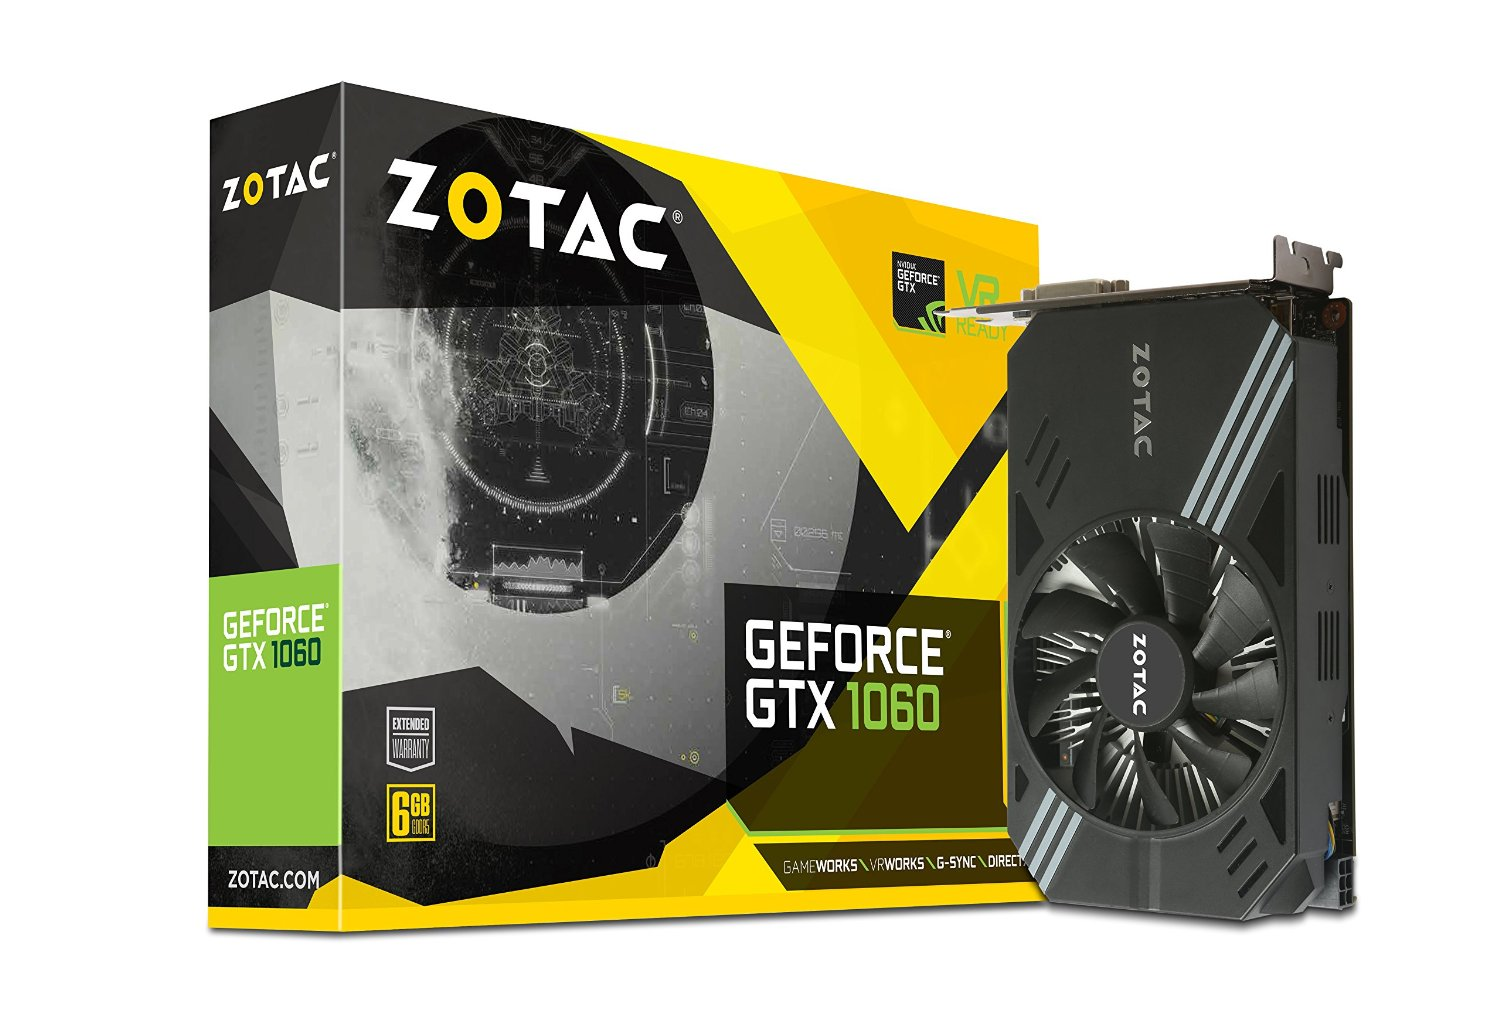 ZOTAC GeForce GTX 1060 VR Ready Graphics Card | ZT-P10600A-10L